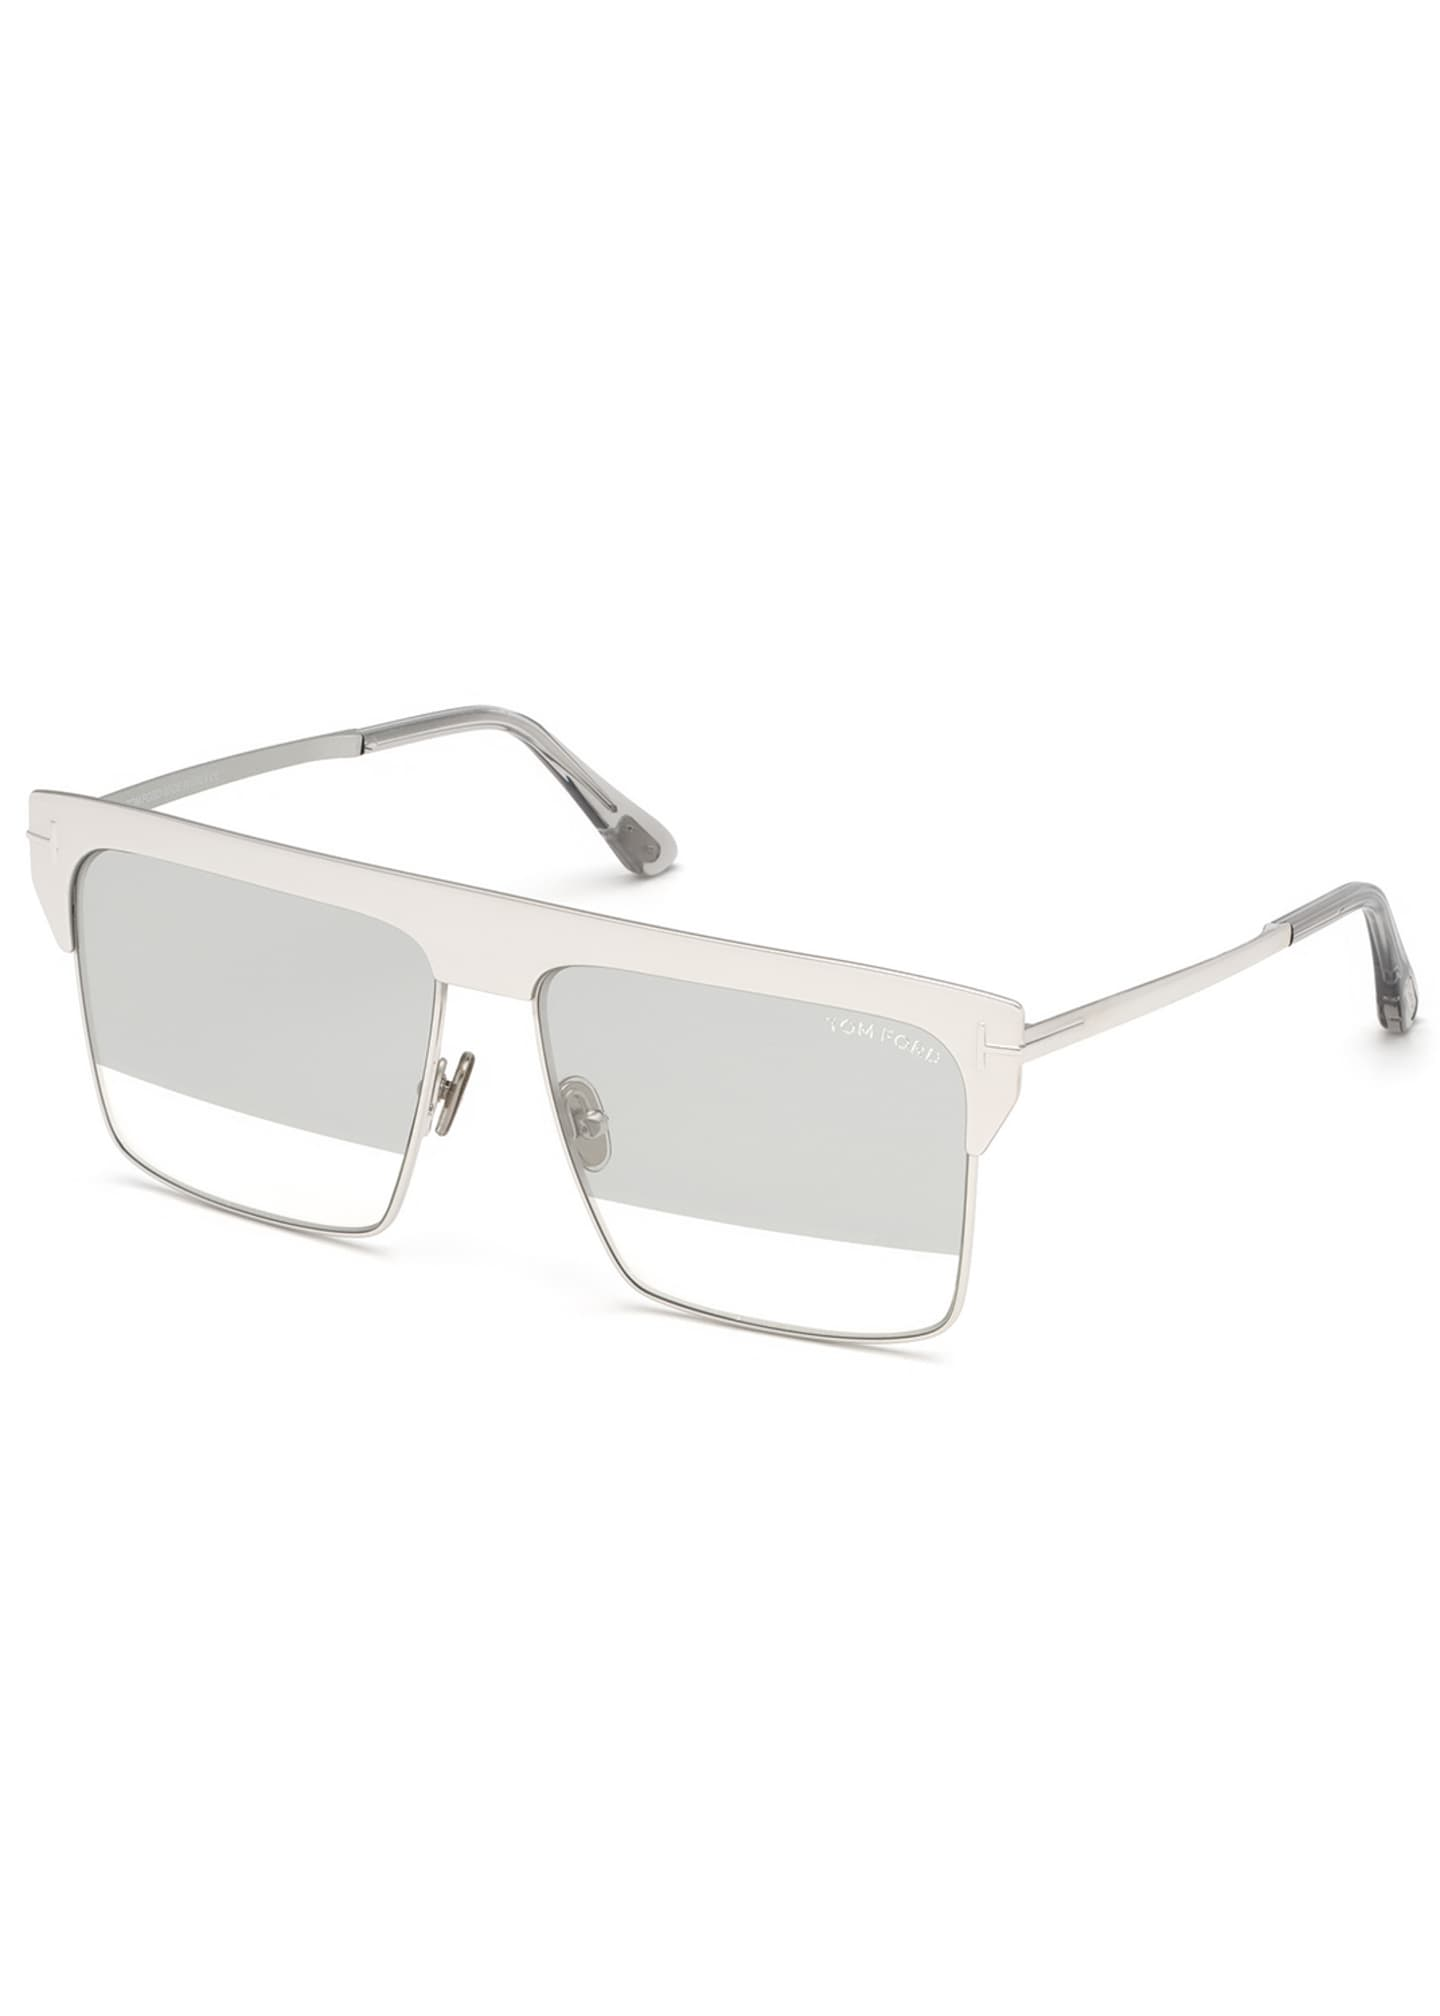 TOM FORD Men's Square Half-Rim Metal Sunglasses